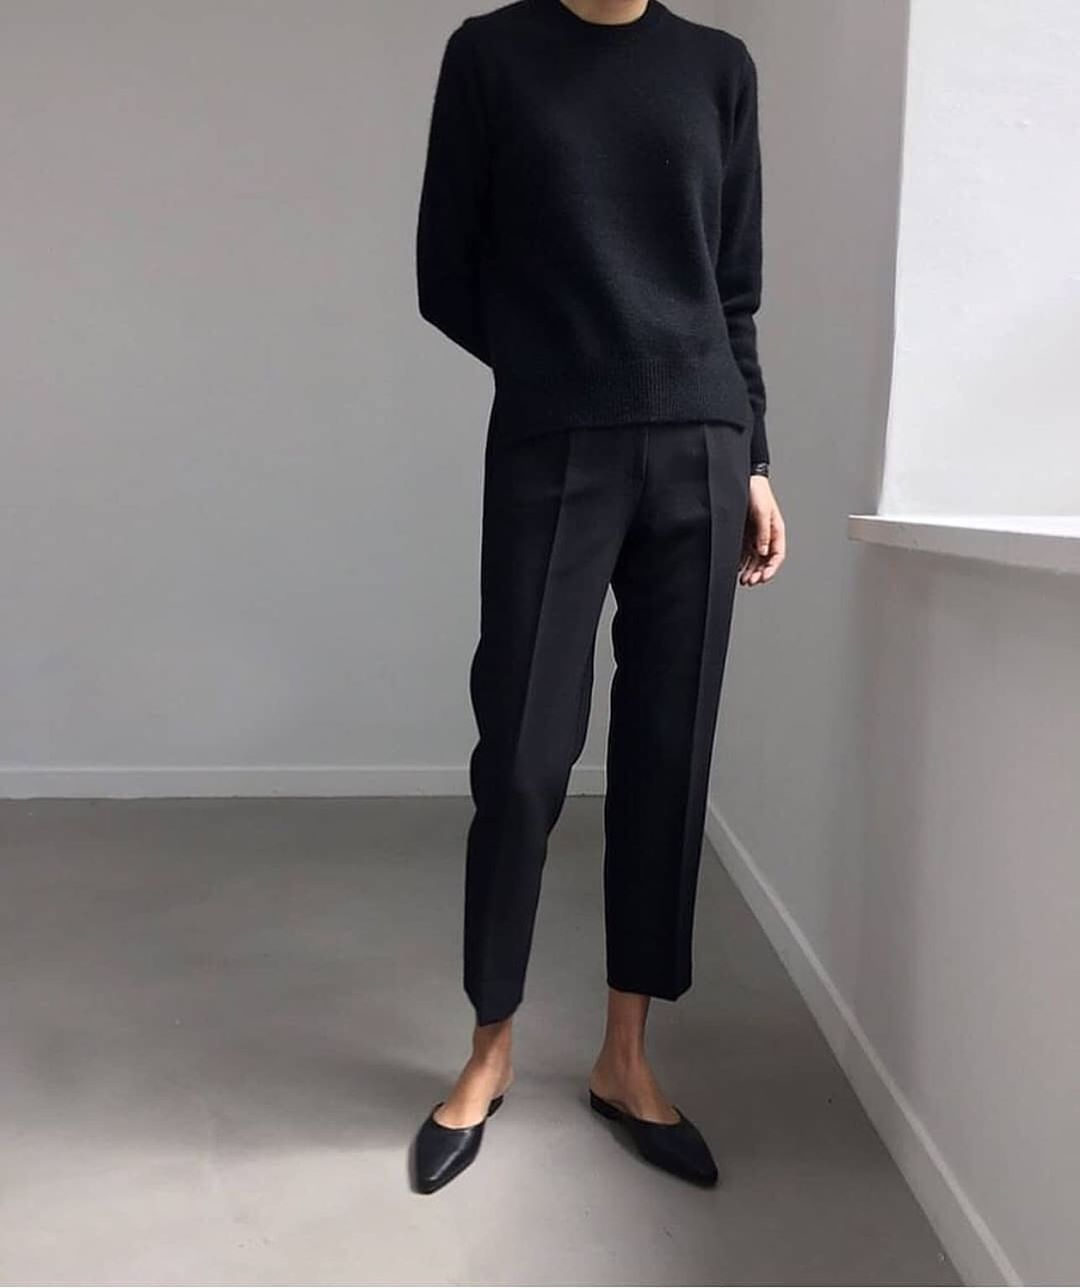 "Nordic Style Report on Instagram: ""We're on a minimalistic black track over here.."